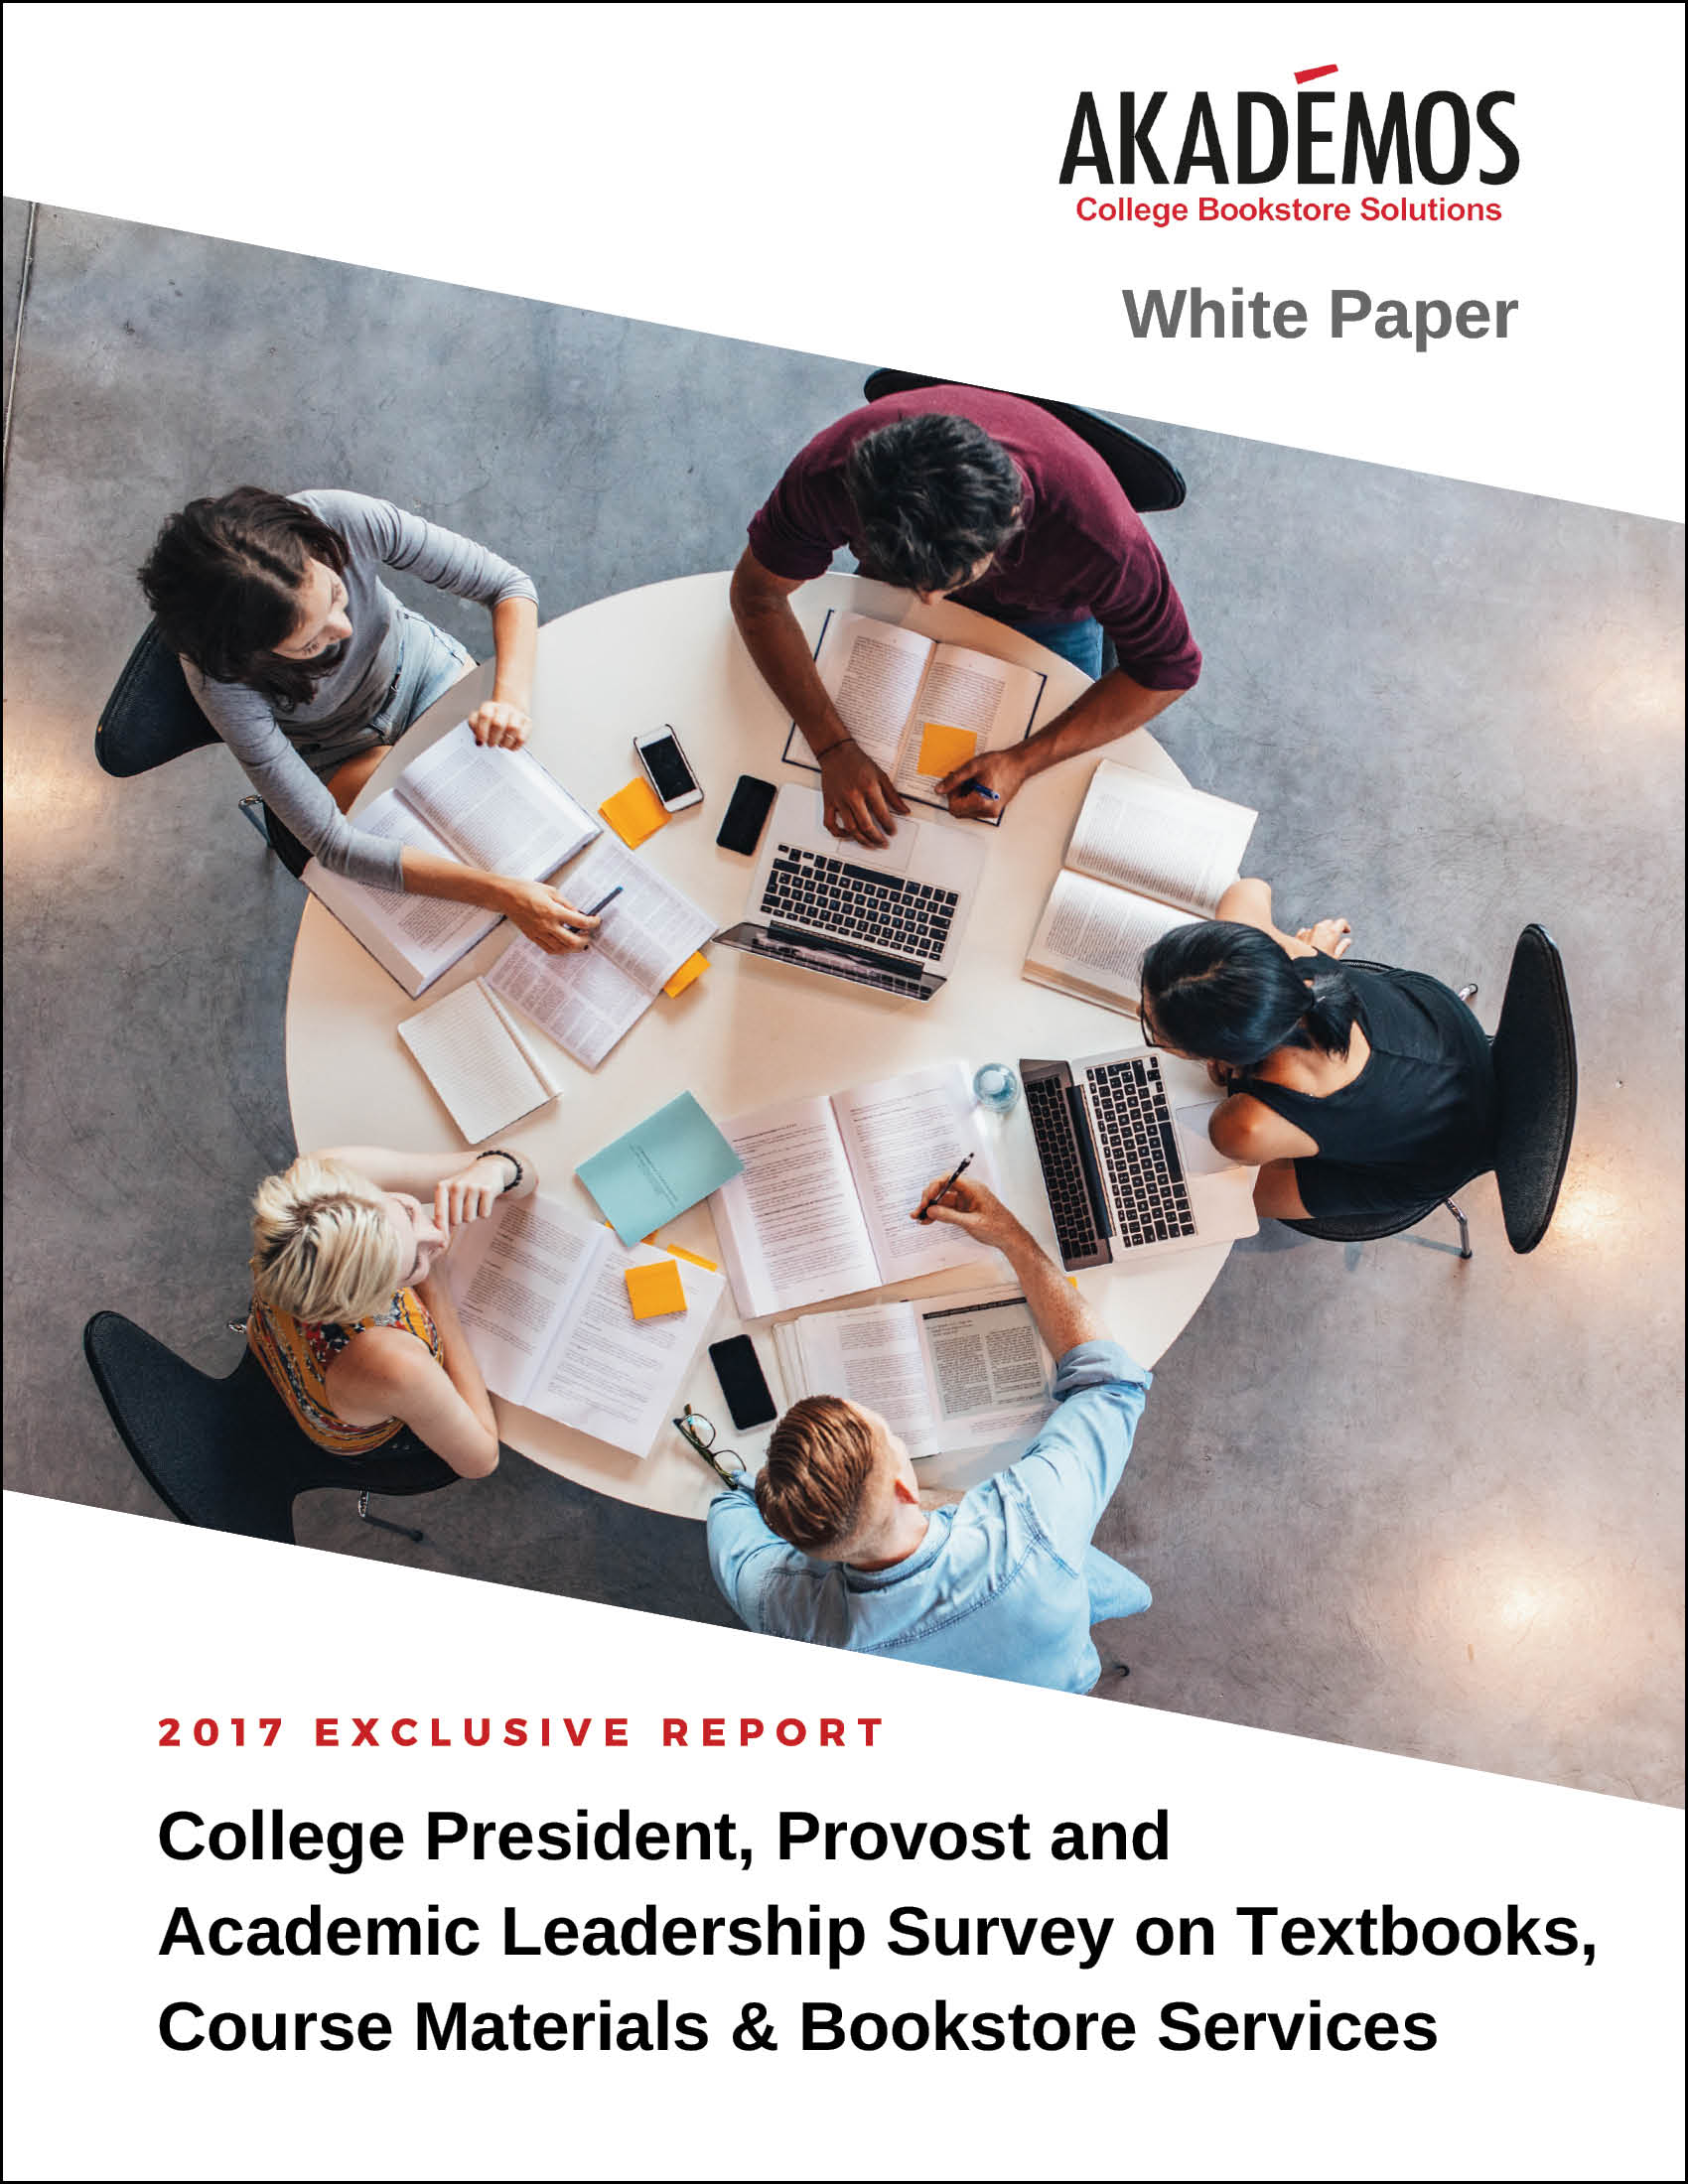 2017 President, Provost and Academic Leadership Survey on Textbooks, Course Materials and Bookstore Services